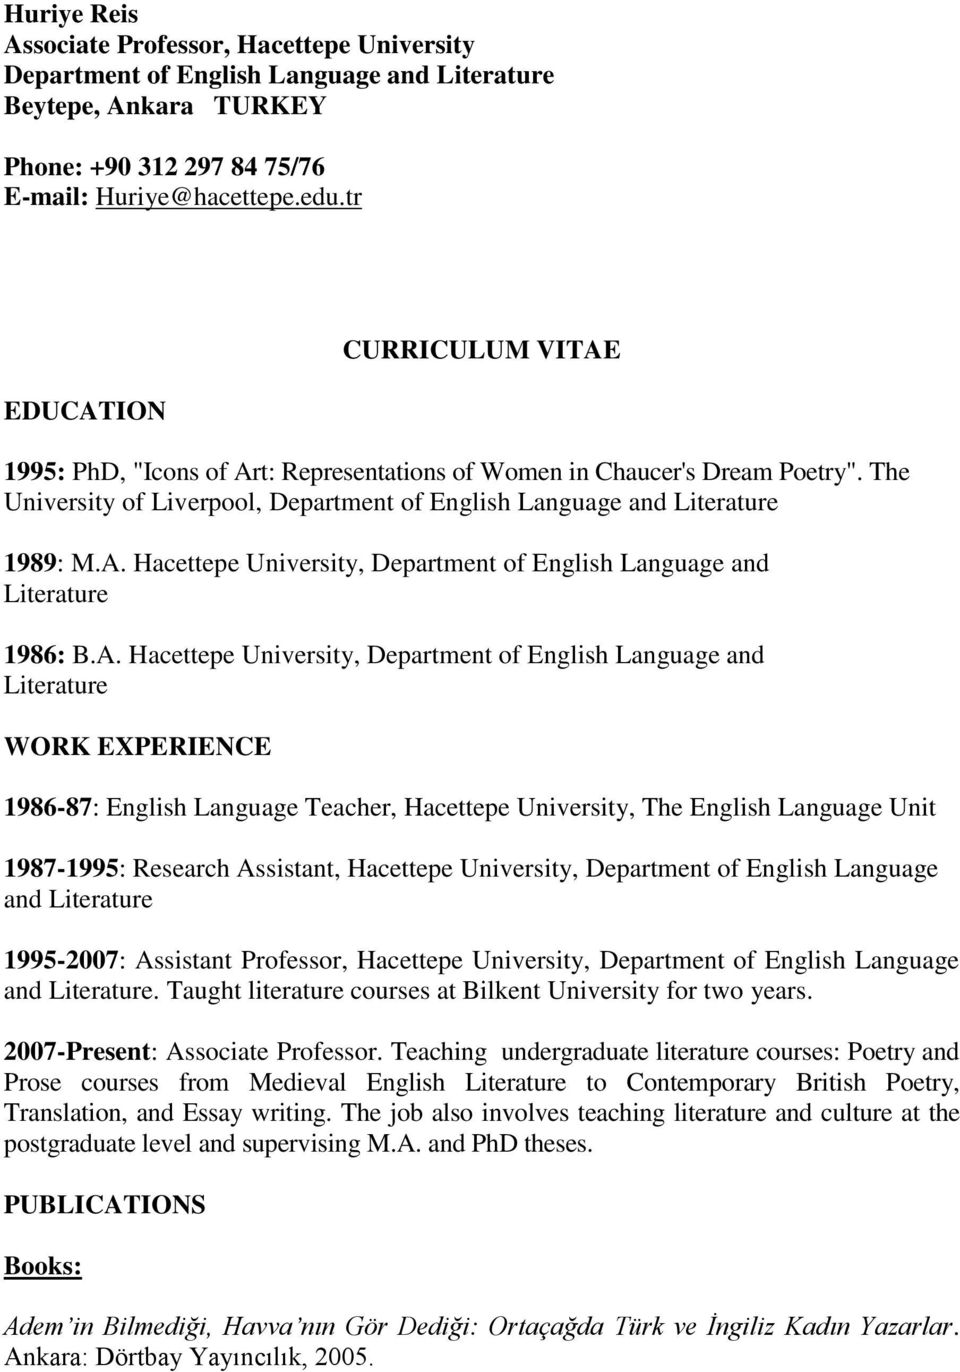 A. Hacettepe University, Department of English Language and Literature WORK EXPERIENCE 1986-87: English Language Teacher, Hacettepe University, The English Language Unit 1987-1995: Research